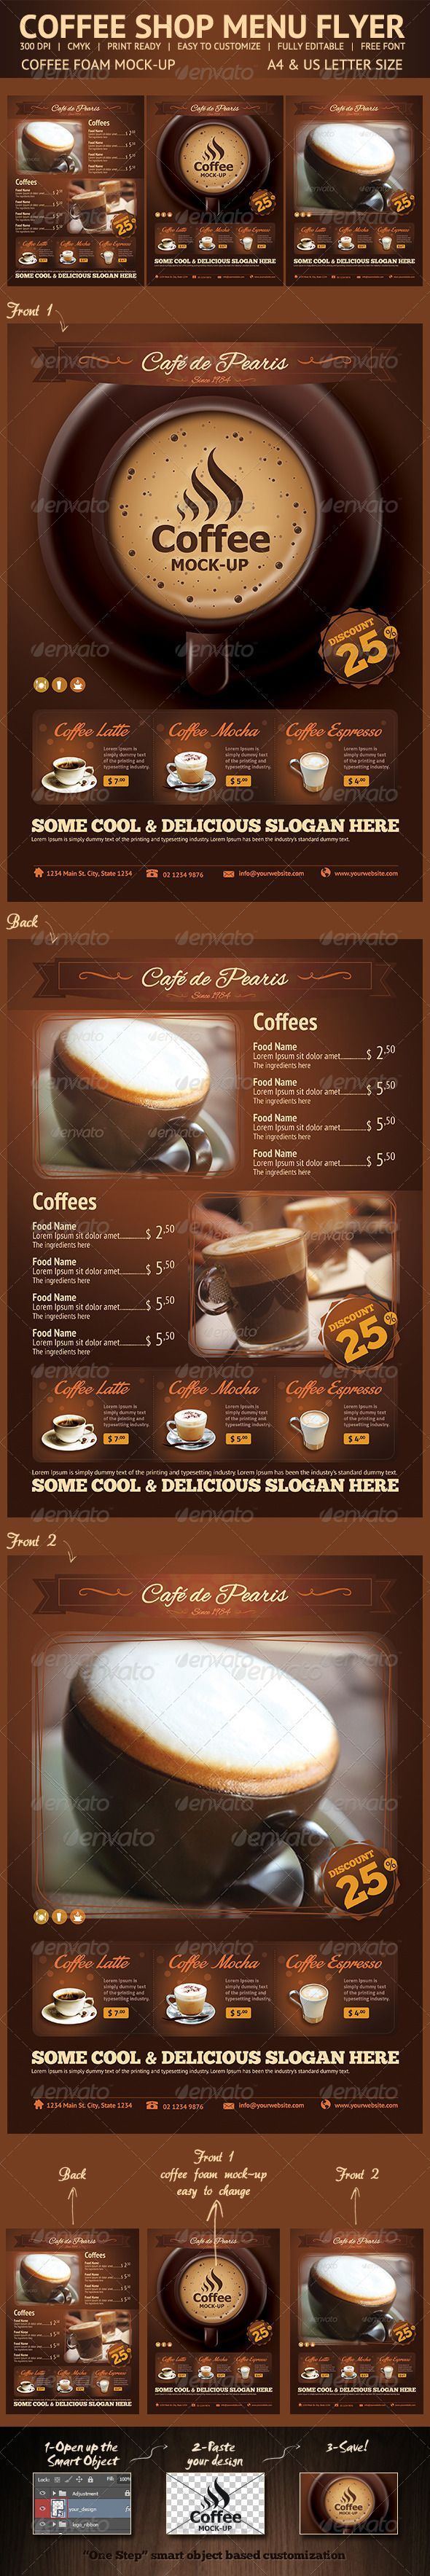 "Coffee Menu Flyer   Coffee Shop Menu Flyer Template.  Included all objects.  Features  Sizes – Letter (8,5×11"")+bleed – A4(8,25×11,7)+bleed 2 Different Front Page Fully editable Photoshop Easy to customize CMYK High Quality 300 DPI Highly Organised Layers Print Ready"